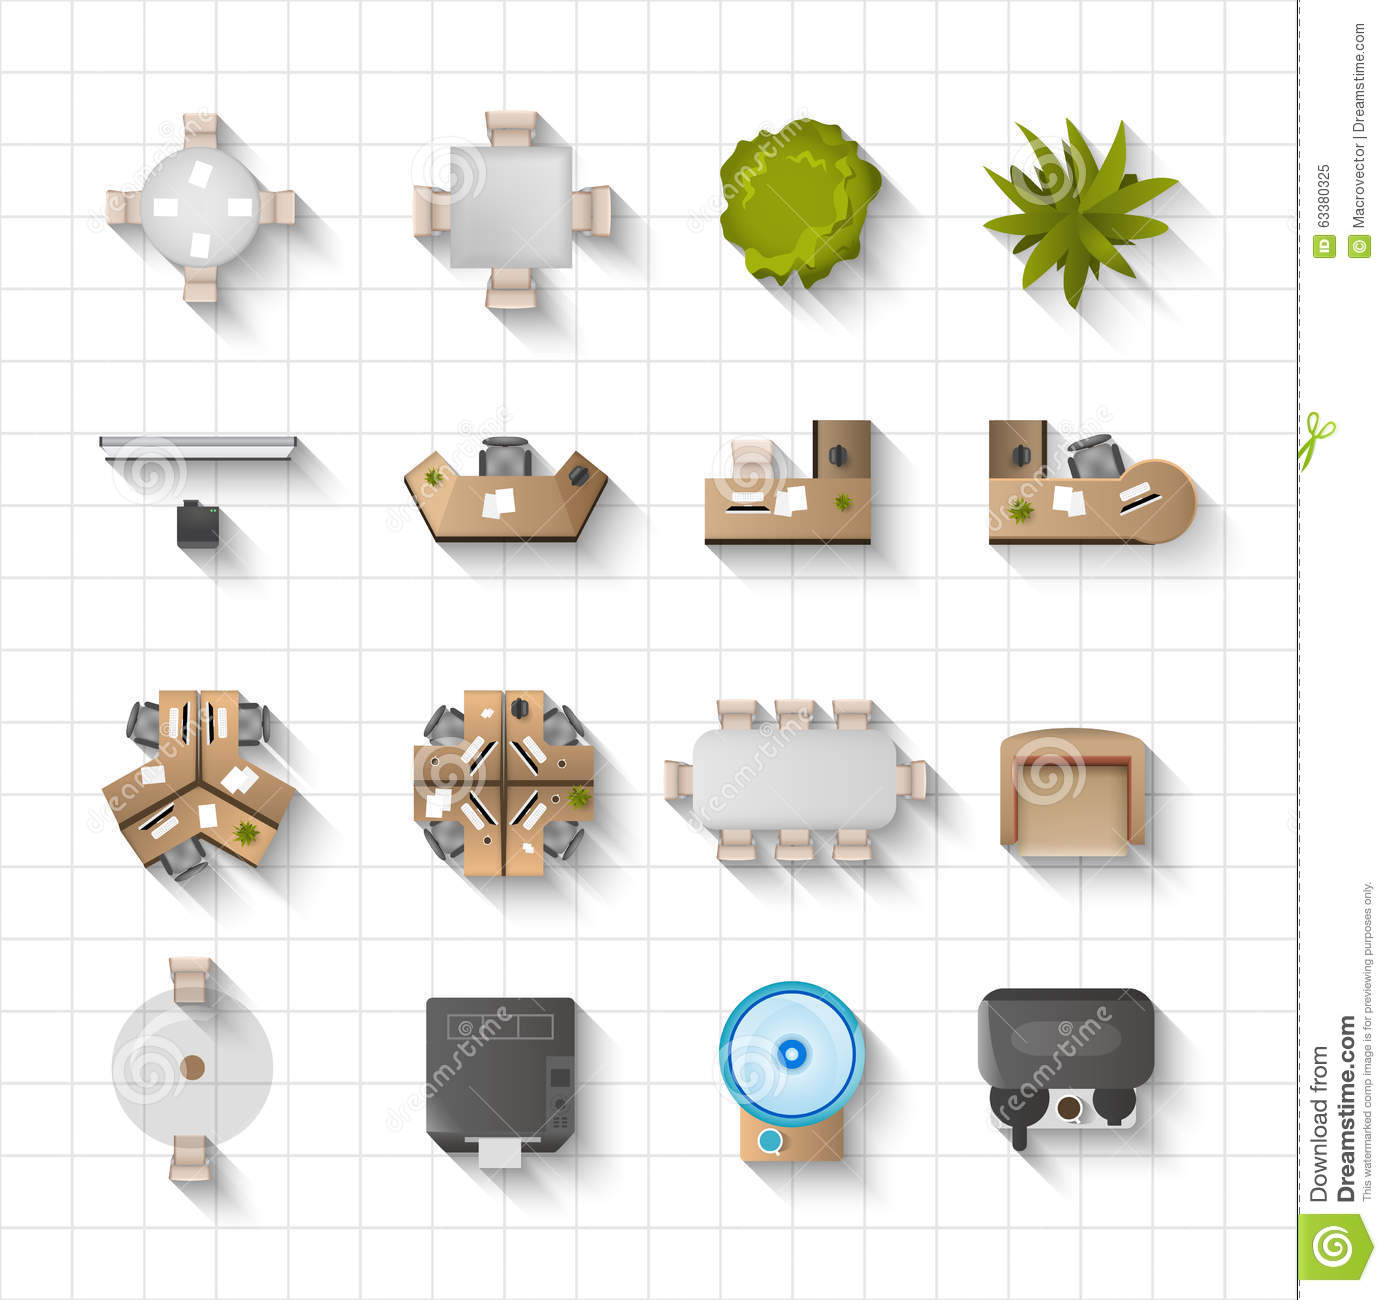 Office Interior Icons Top View Stock Vector Image 63380325 : office interior icons top view furniture set isolated vector illustration 63380325 from www.dreamstime.com size 1387 x 1300 jpeg 132kB